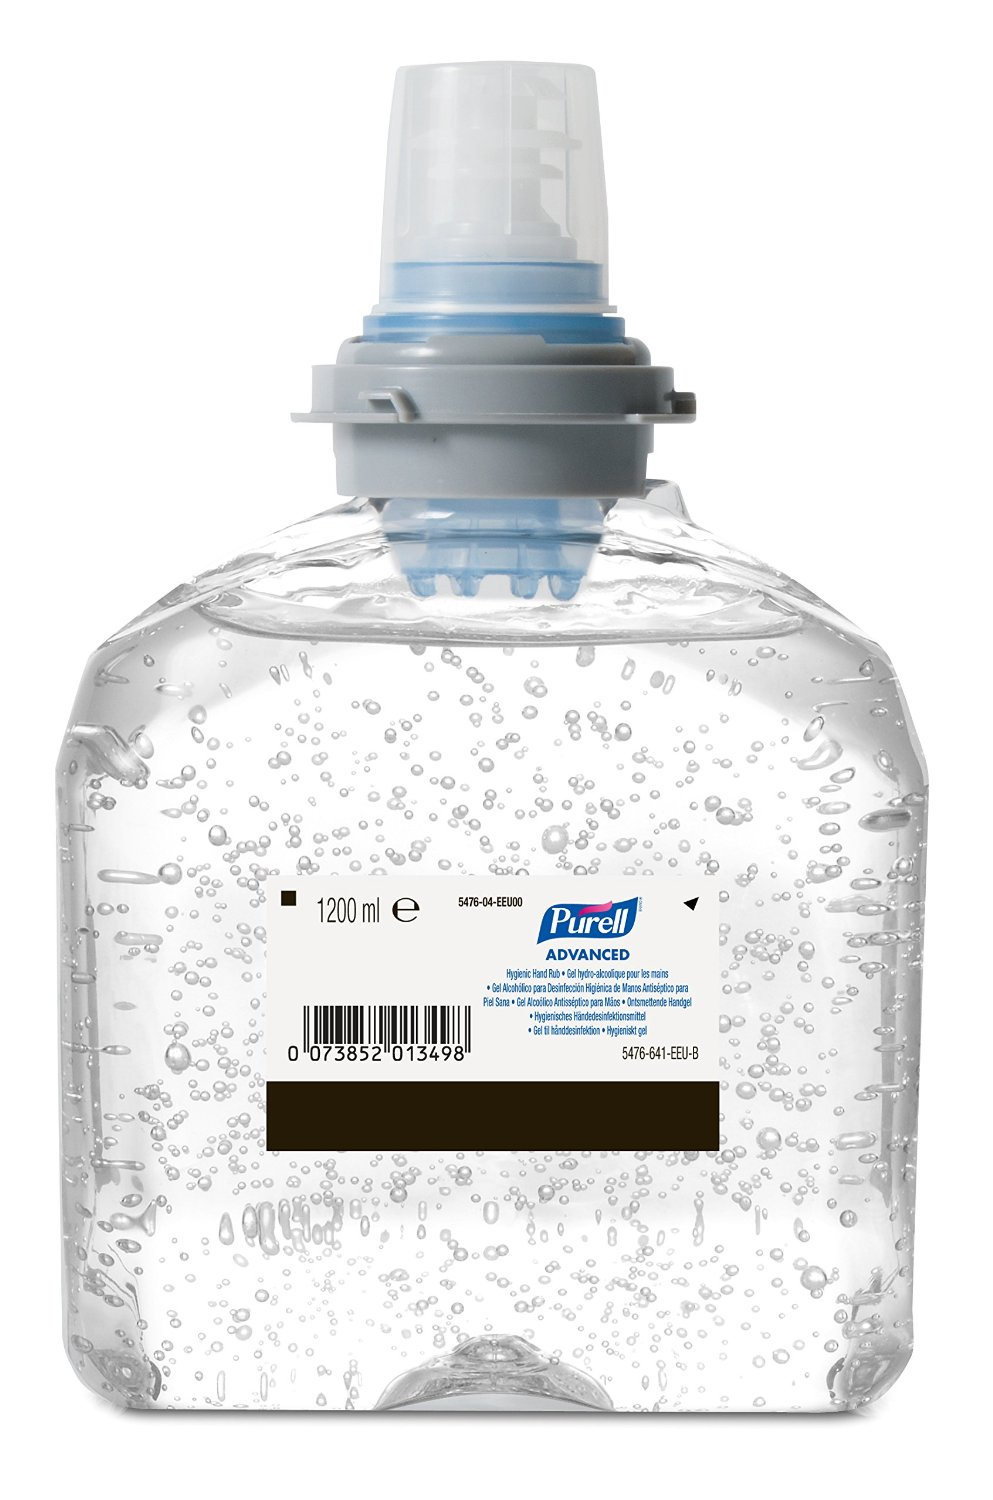 Aviz Biocid - Gel Dezinfectant Purell Tfx 1200ml sanito.ro